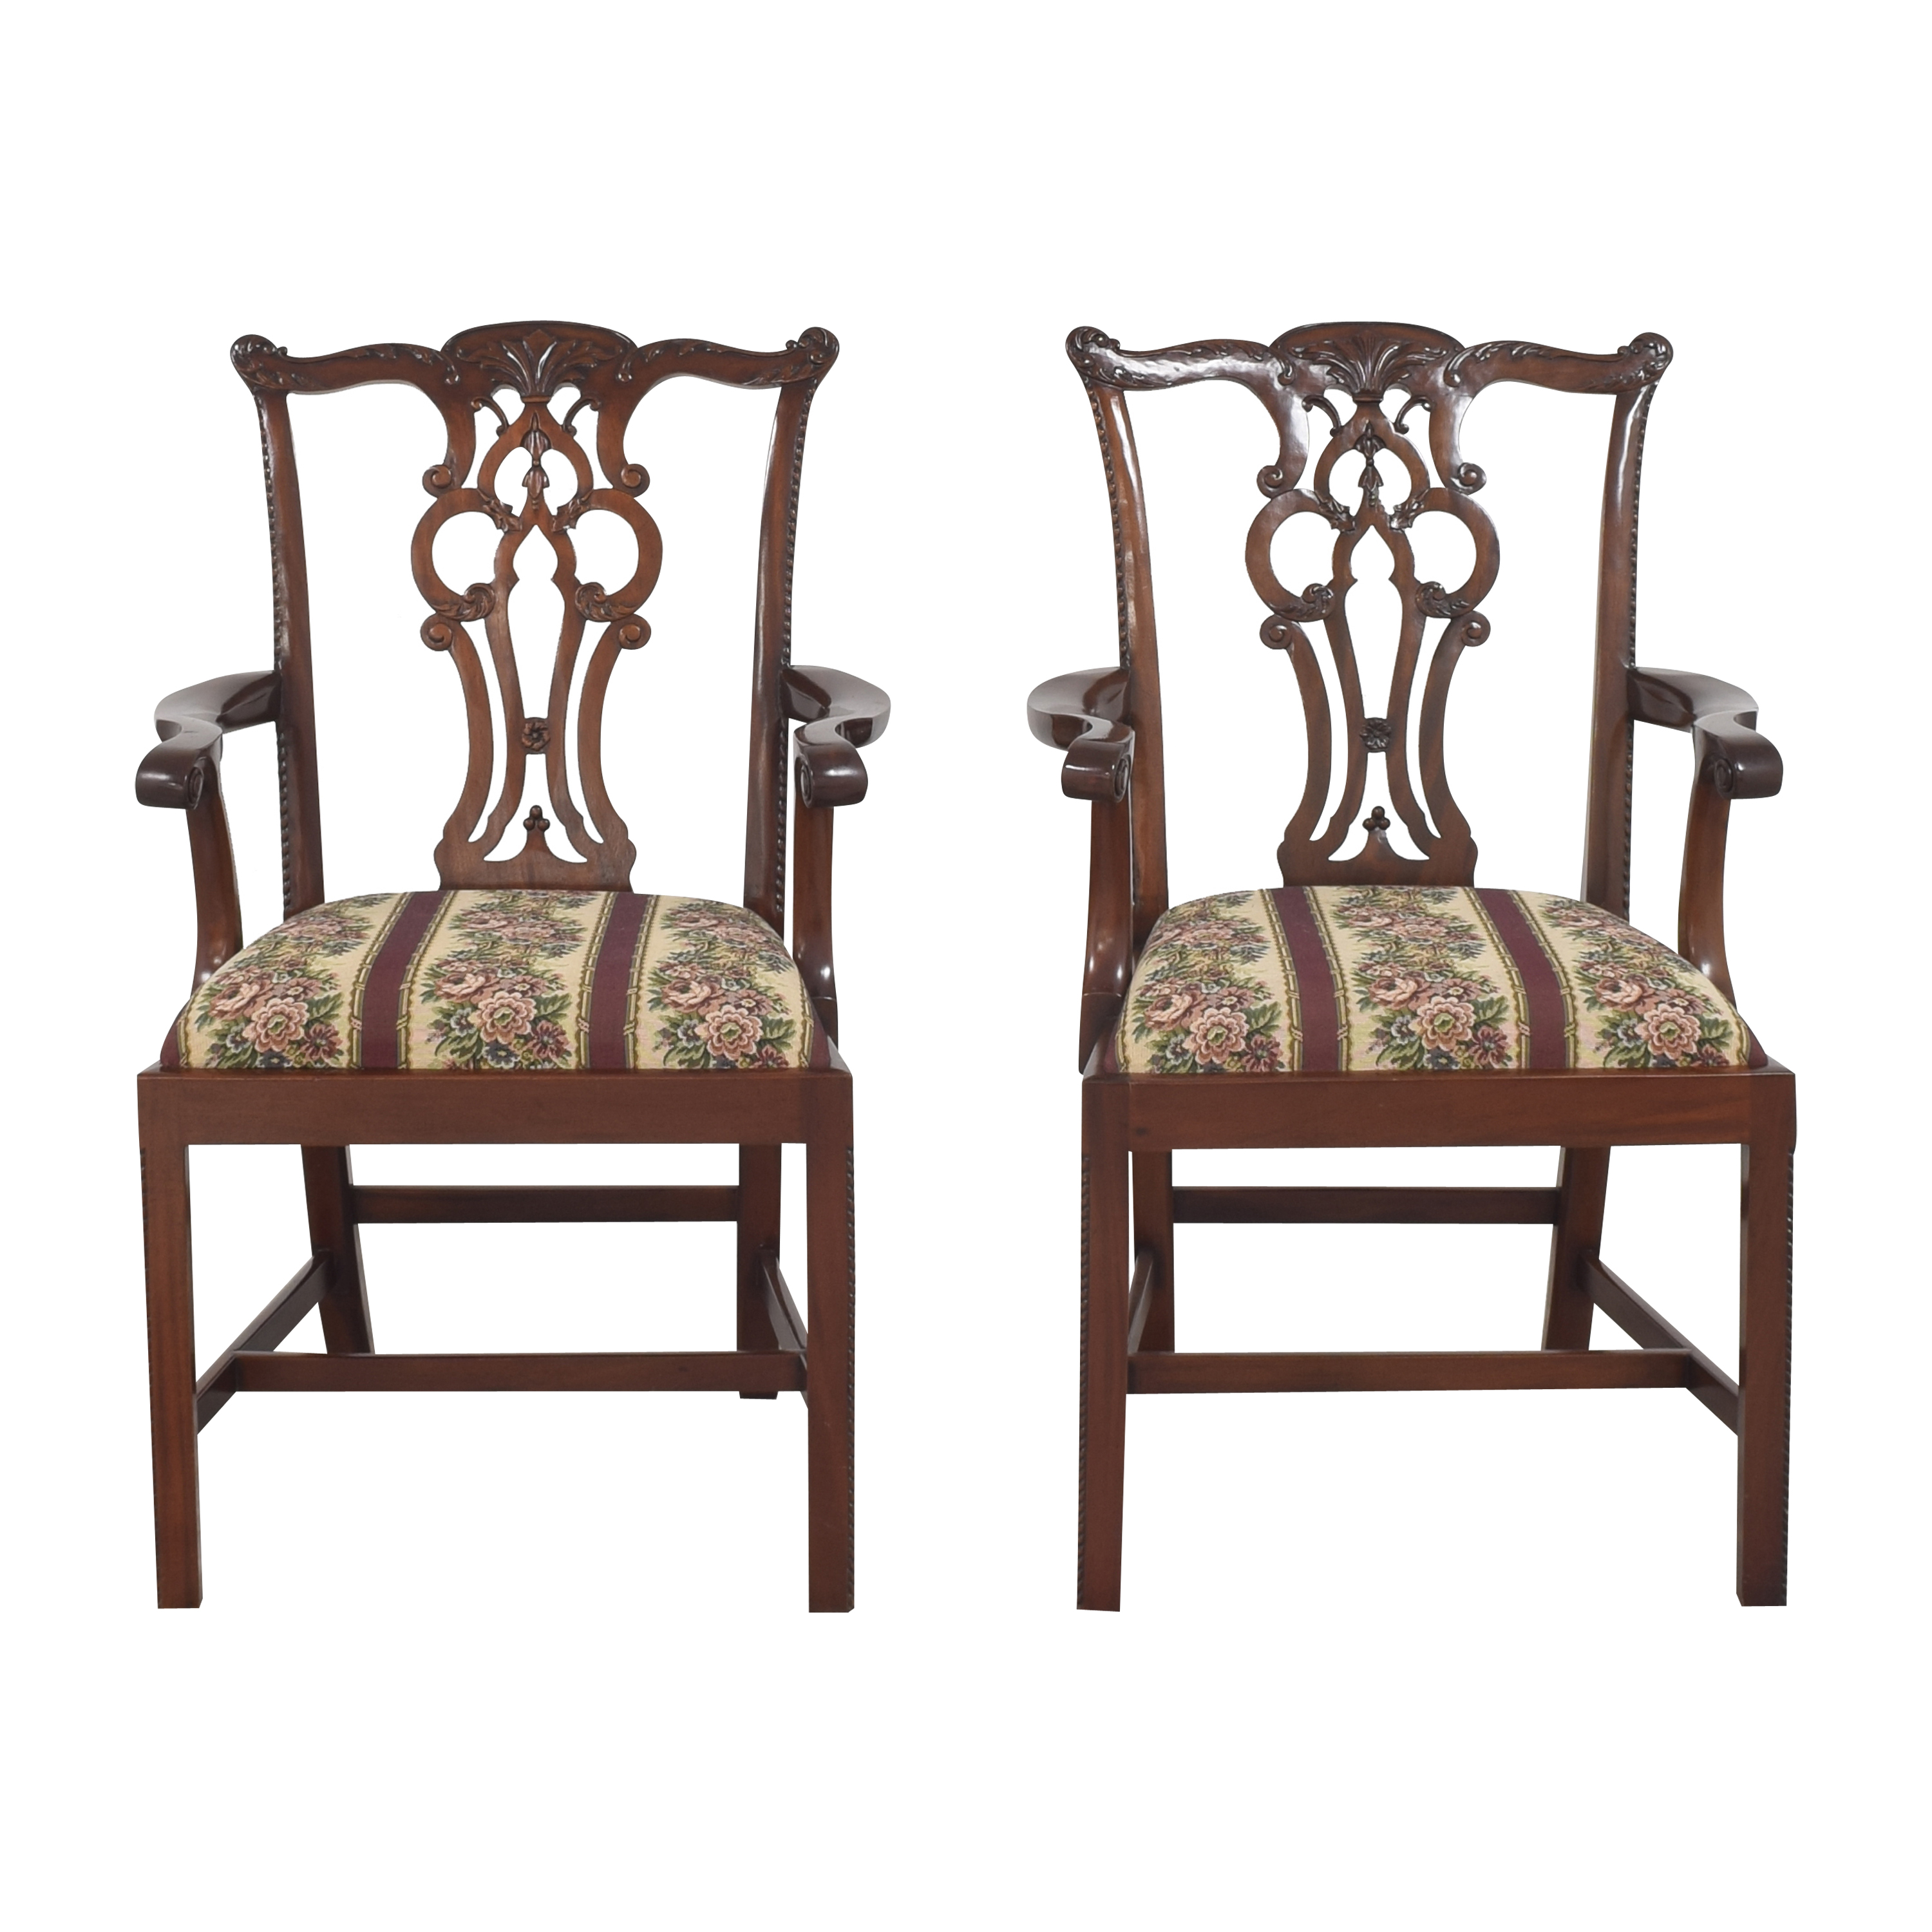 Maitland-Smith Maitland-Smith Chippendale Upholstered Dining Arm Chairs for sale